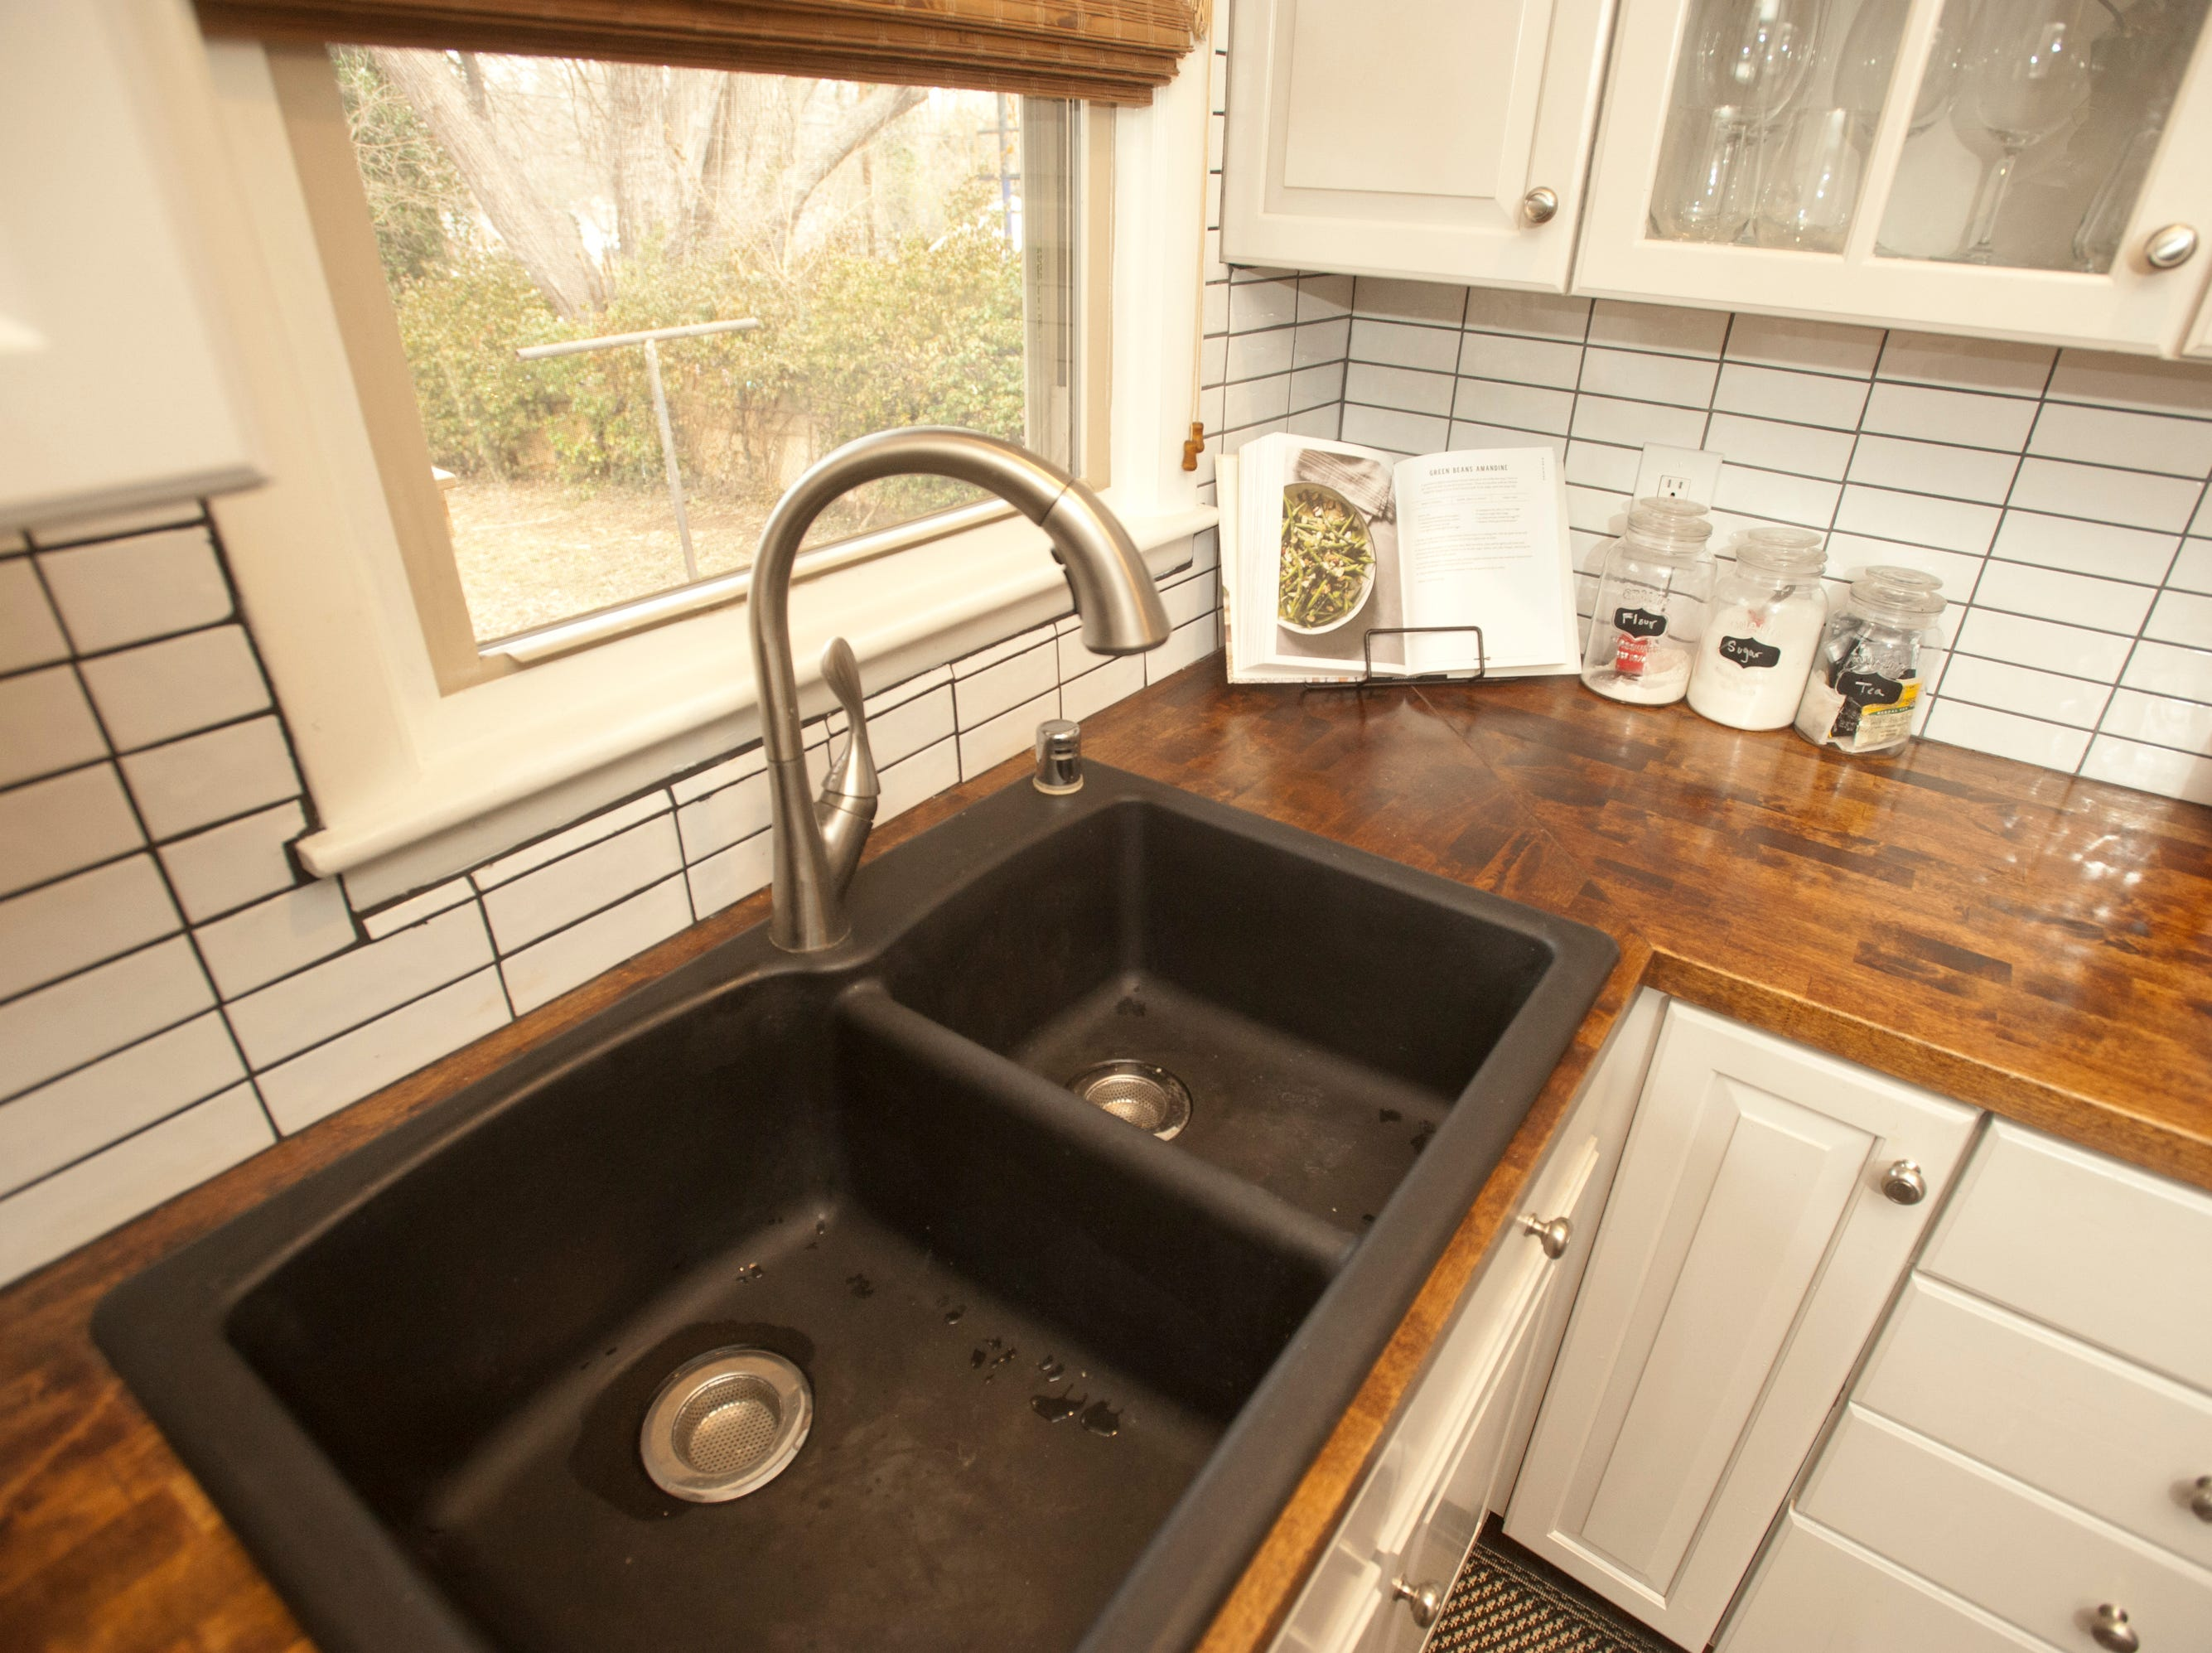 The kitchen counter top is made of sealed butcher block stained to match the color of the wood floors. The backsplash is a grid patterned ceramic subway tile.